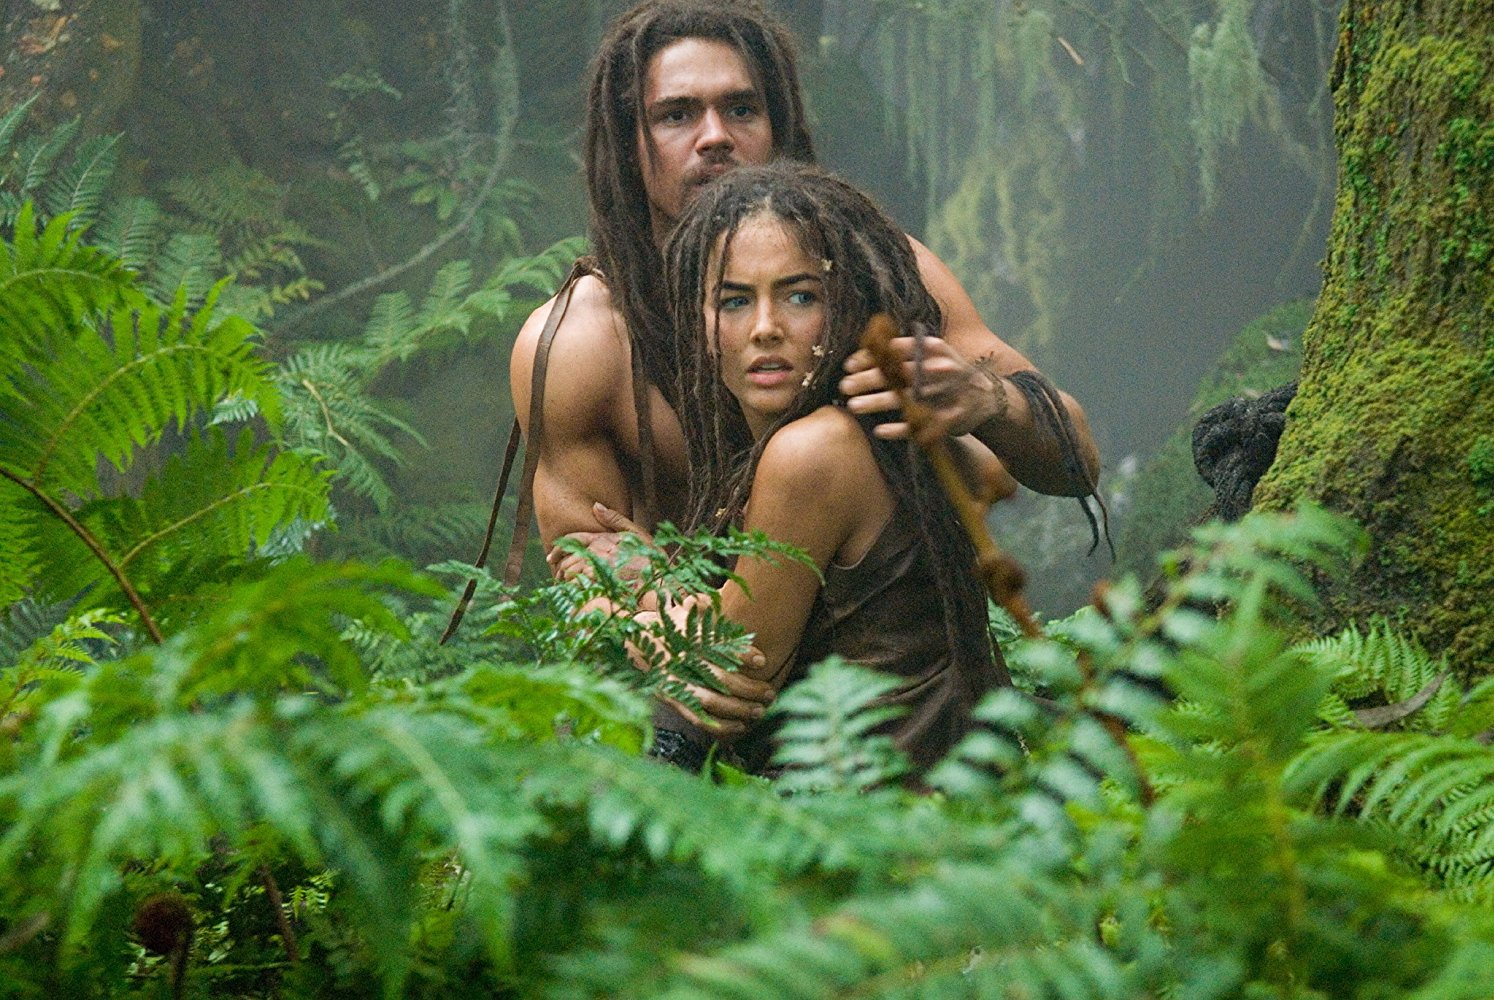 Prehistoric love - Steven Strait and Camilla Belle in 10,000 BC (2008)